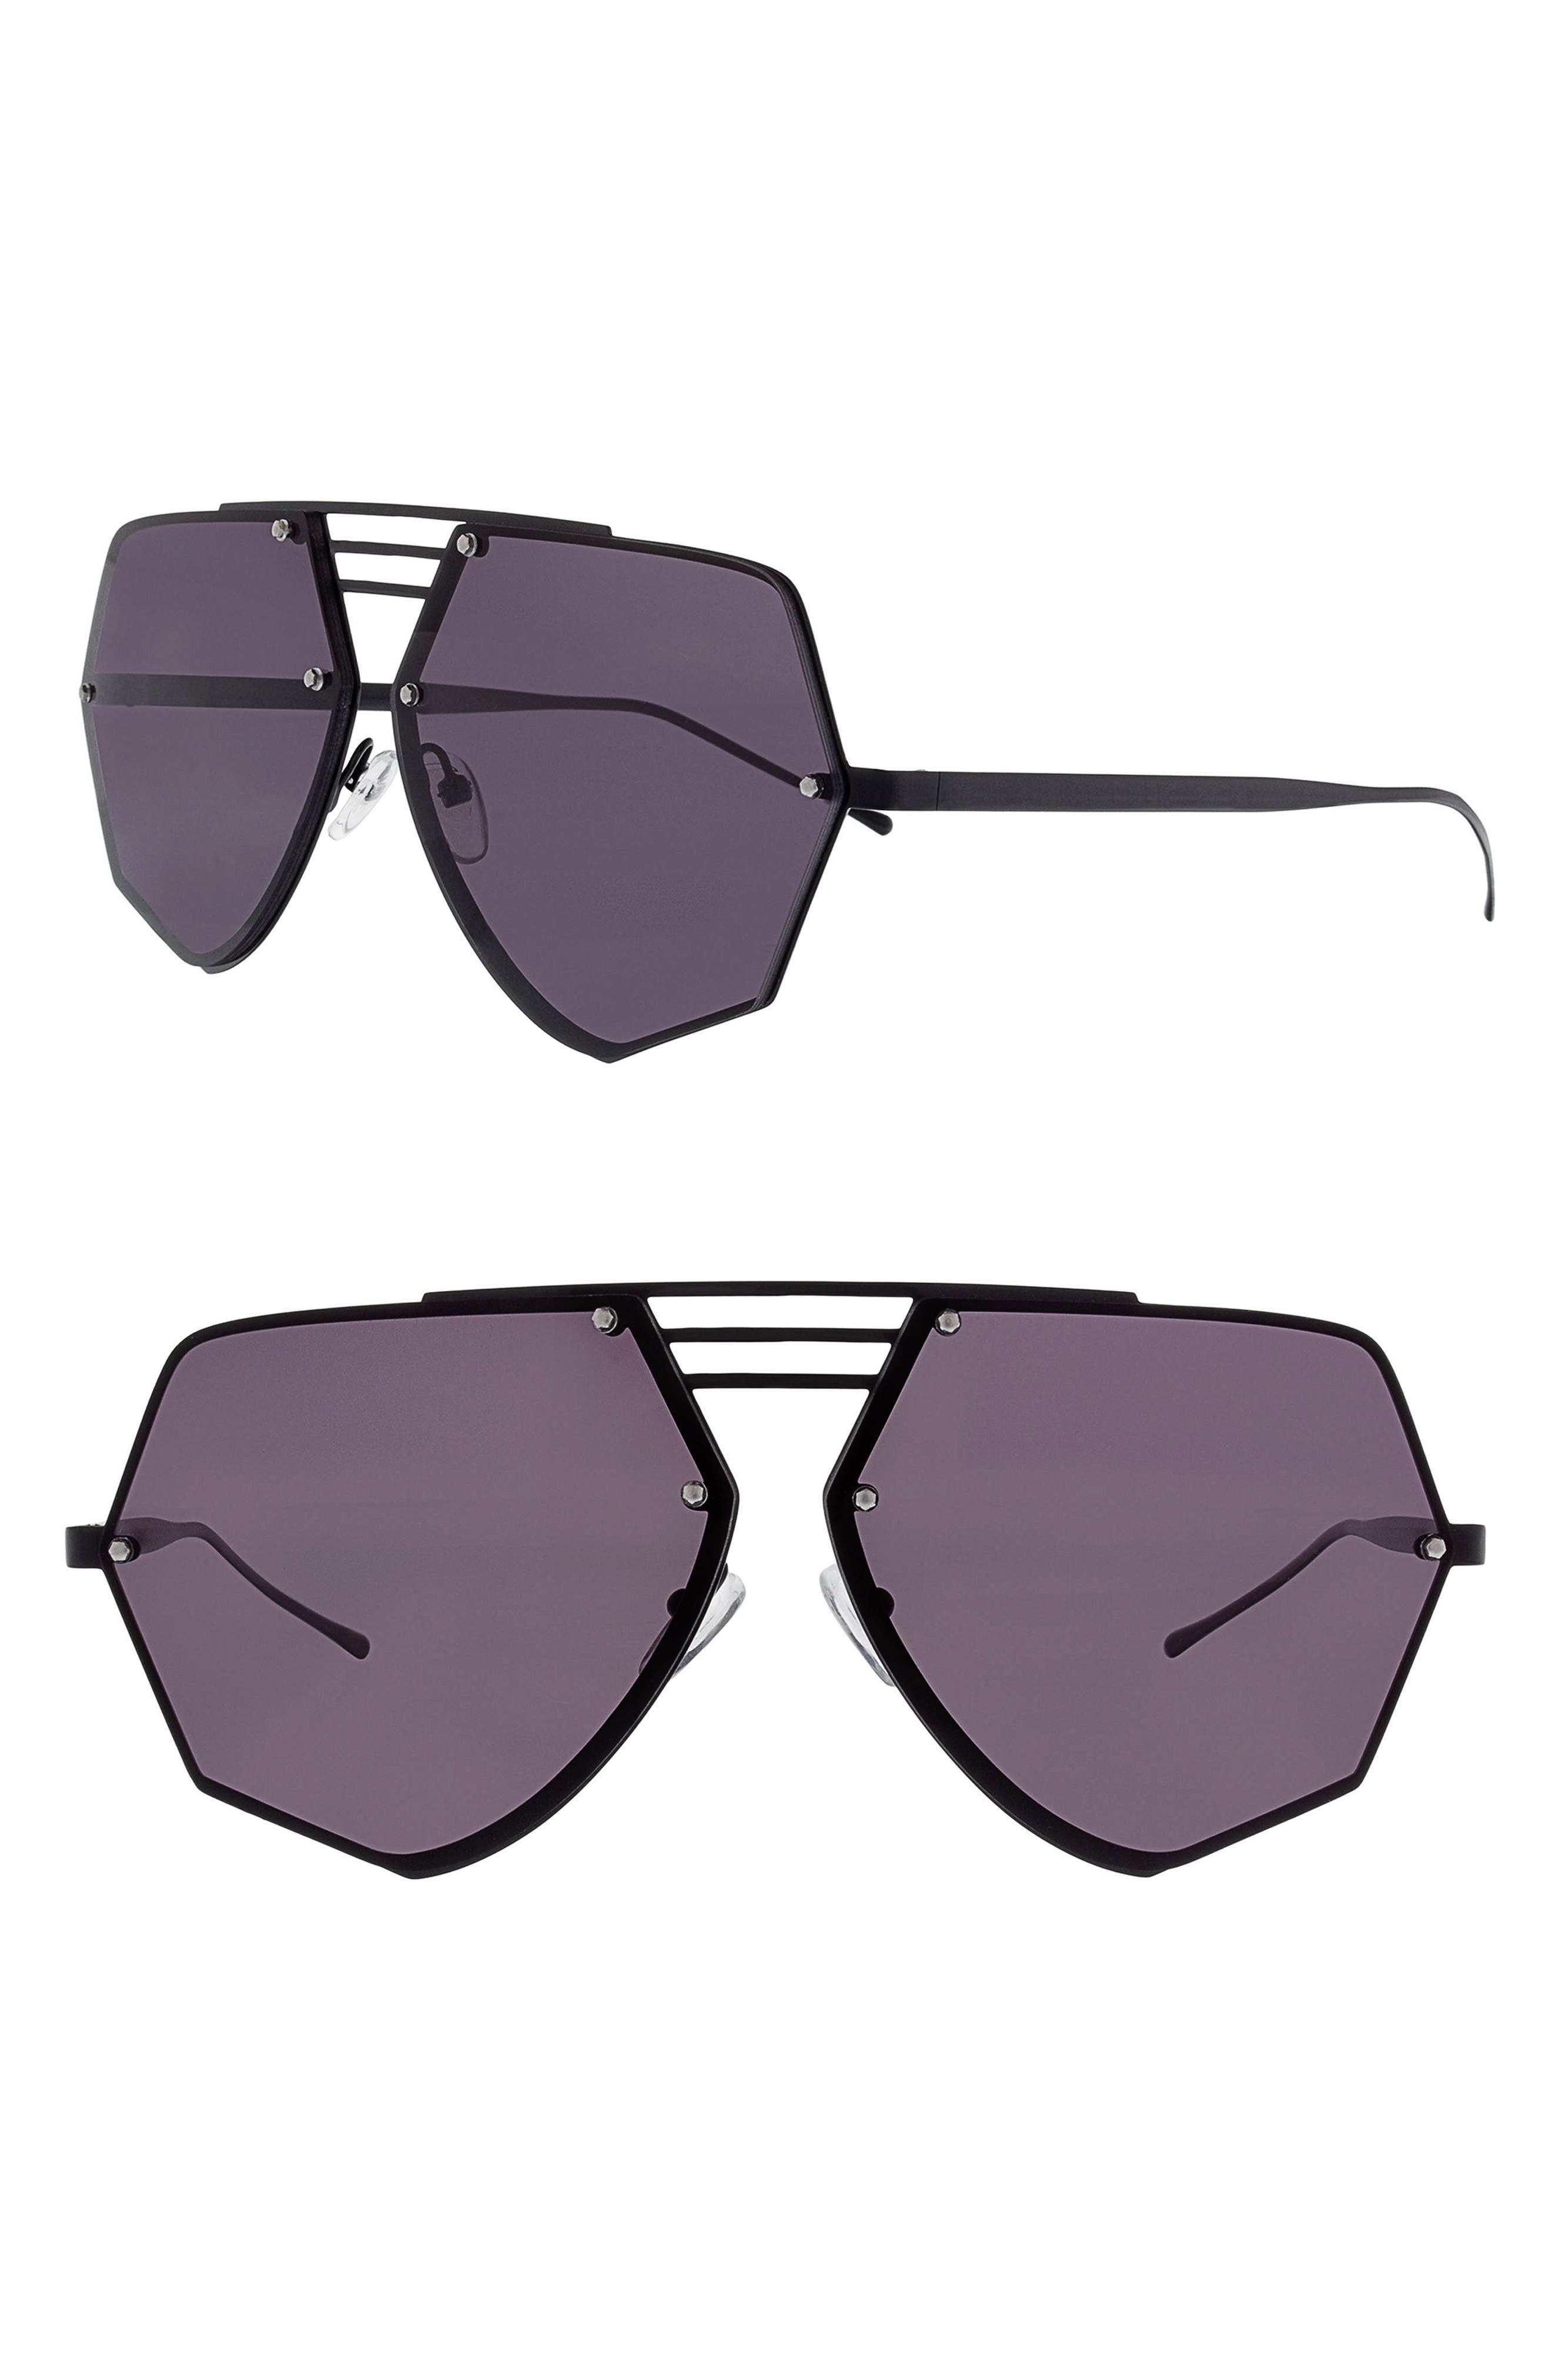 Geo 8 60mm Sunglasses,                         Main,                         color, 040